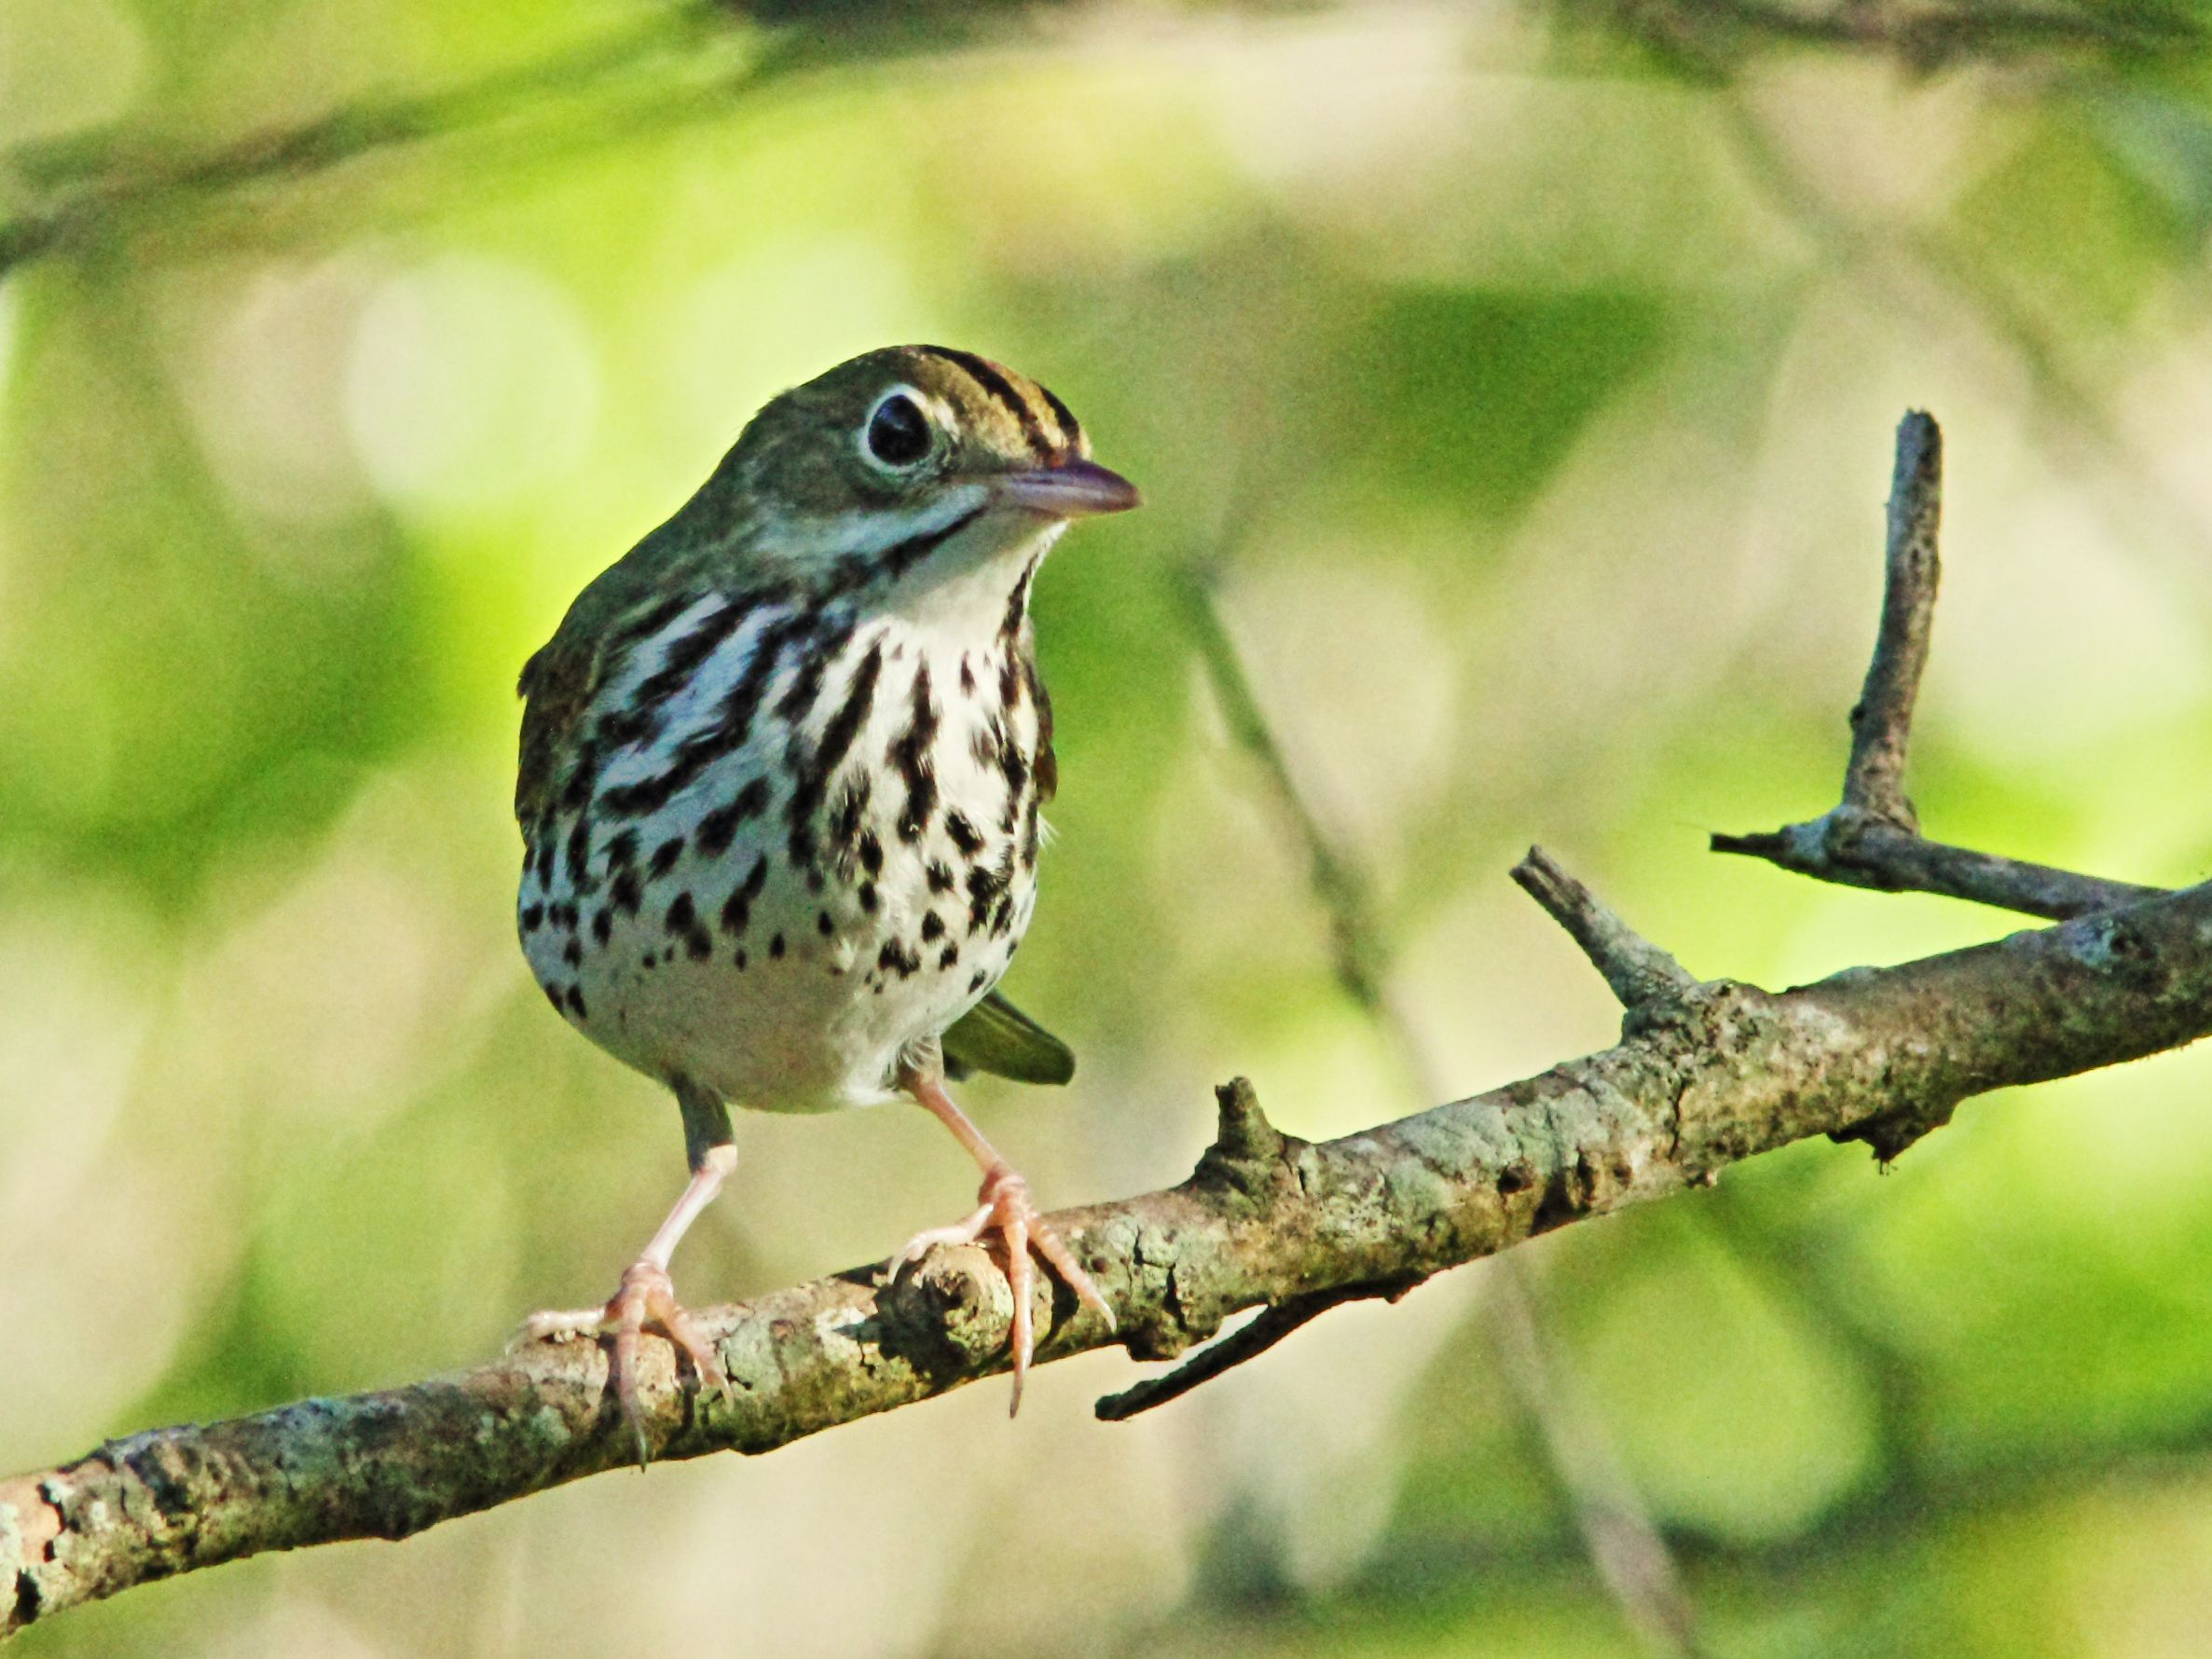 An ovenbird perched on a branch.